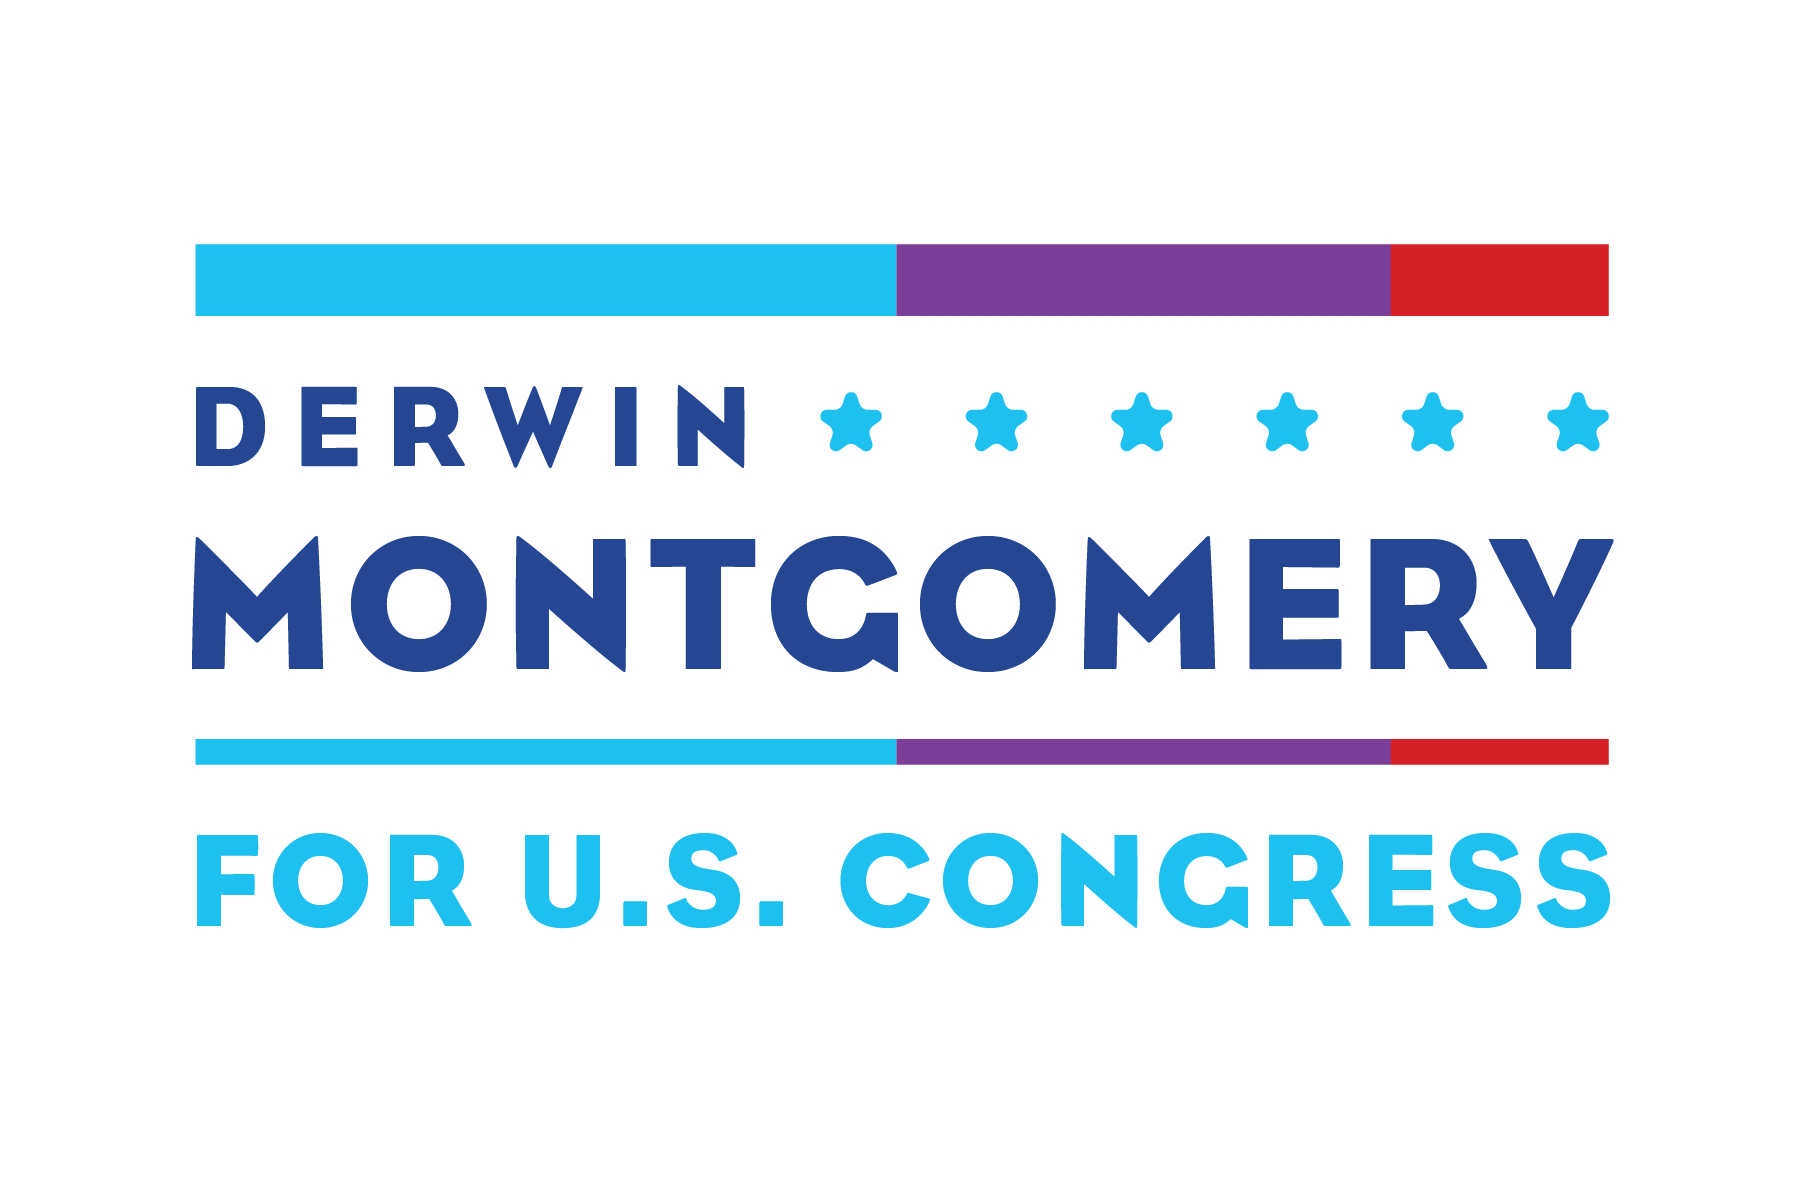 Derwin Montgomery for Congress